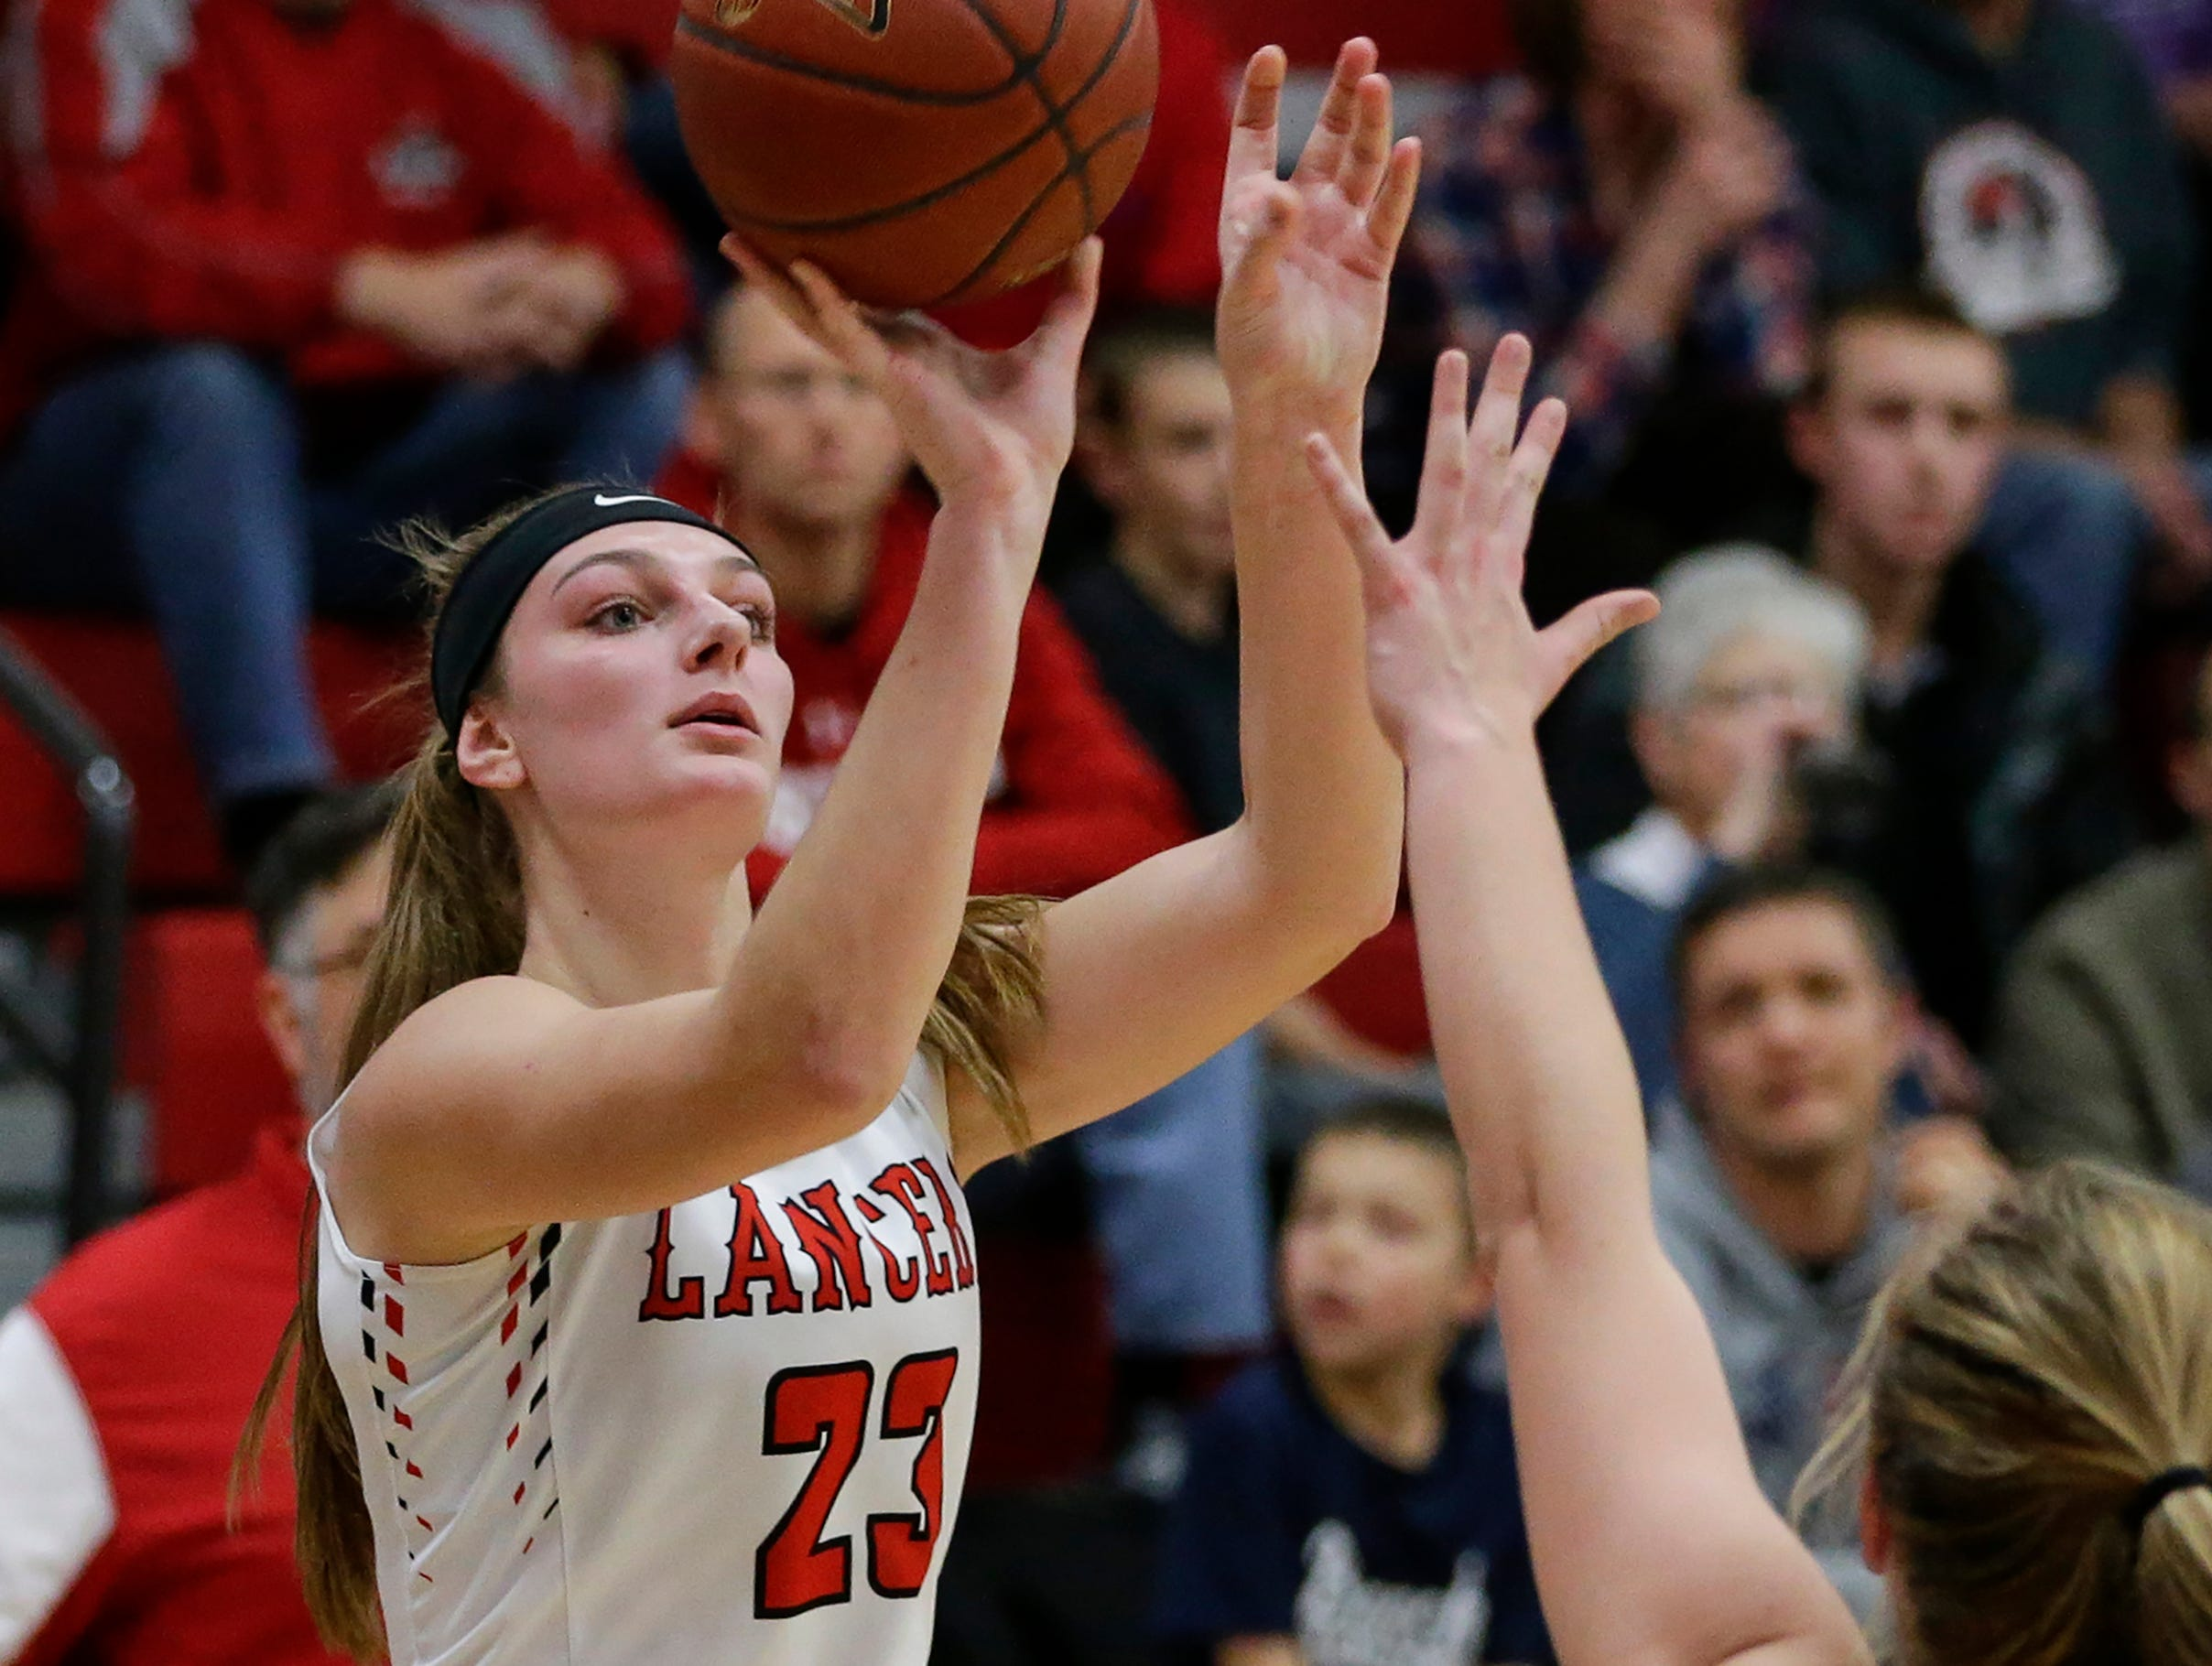 Manitowoc Lutheran's Emily Behnke puts up a jumpshot against Howards Grove at Manitowoc Lutheran High School Tuesday, December 18, 2018, in Manitowoc, Wis. Joshua Clark/USA TODAY NETWORK-Wisconsin